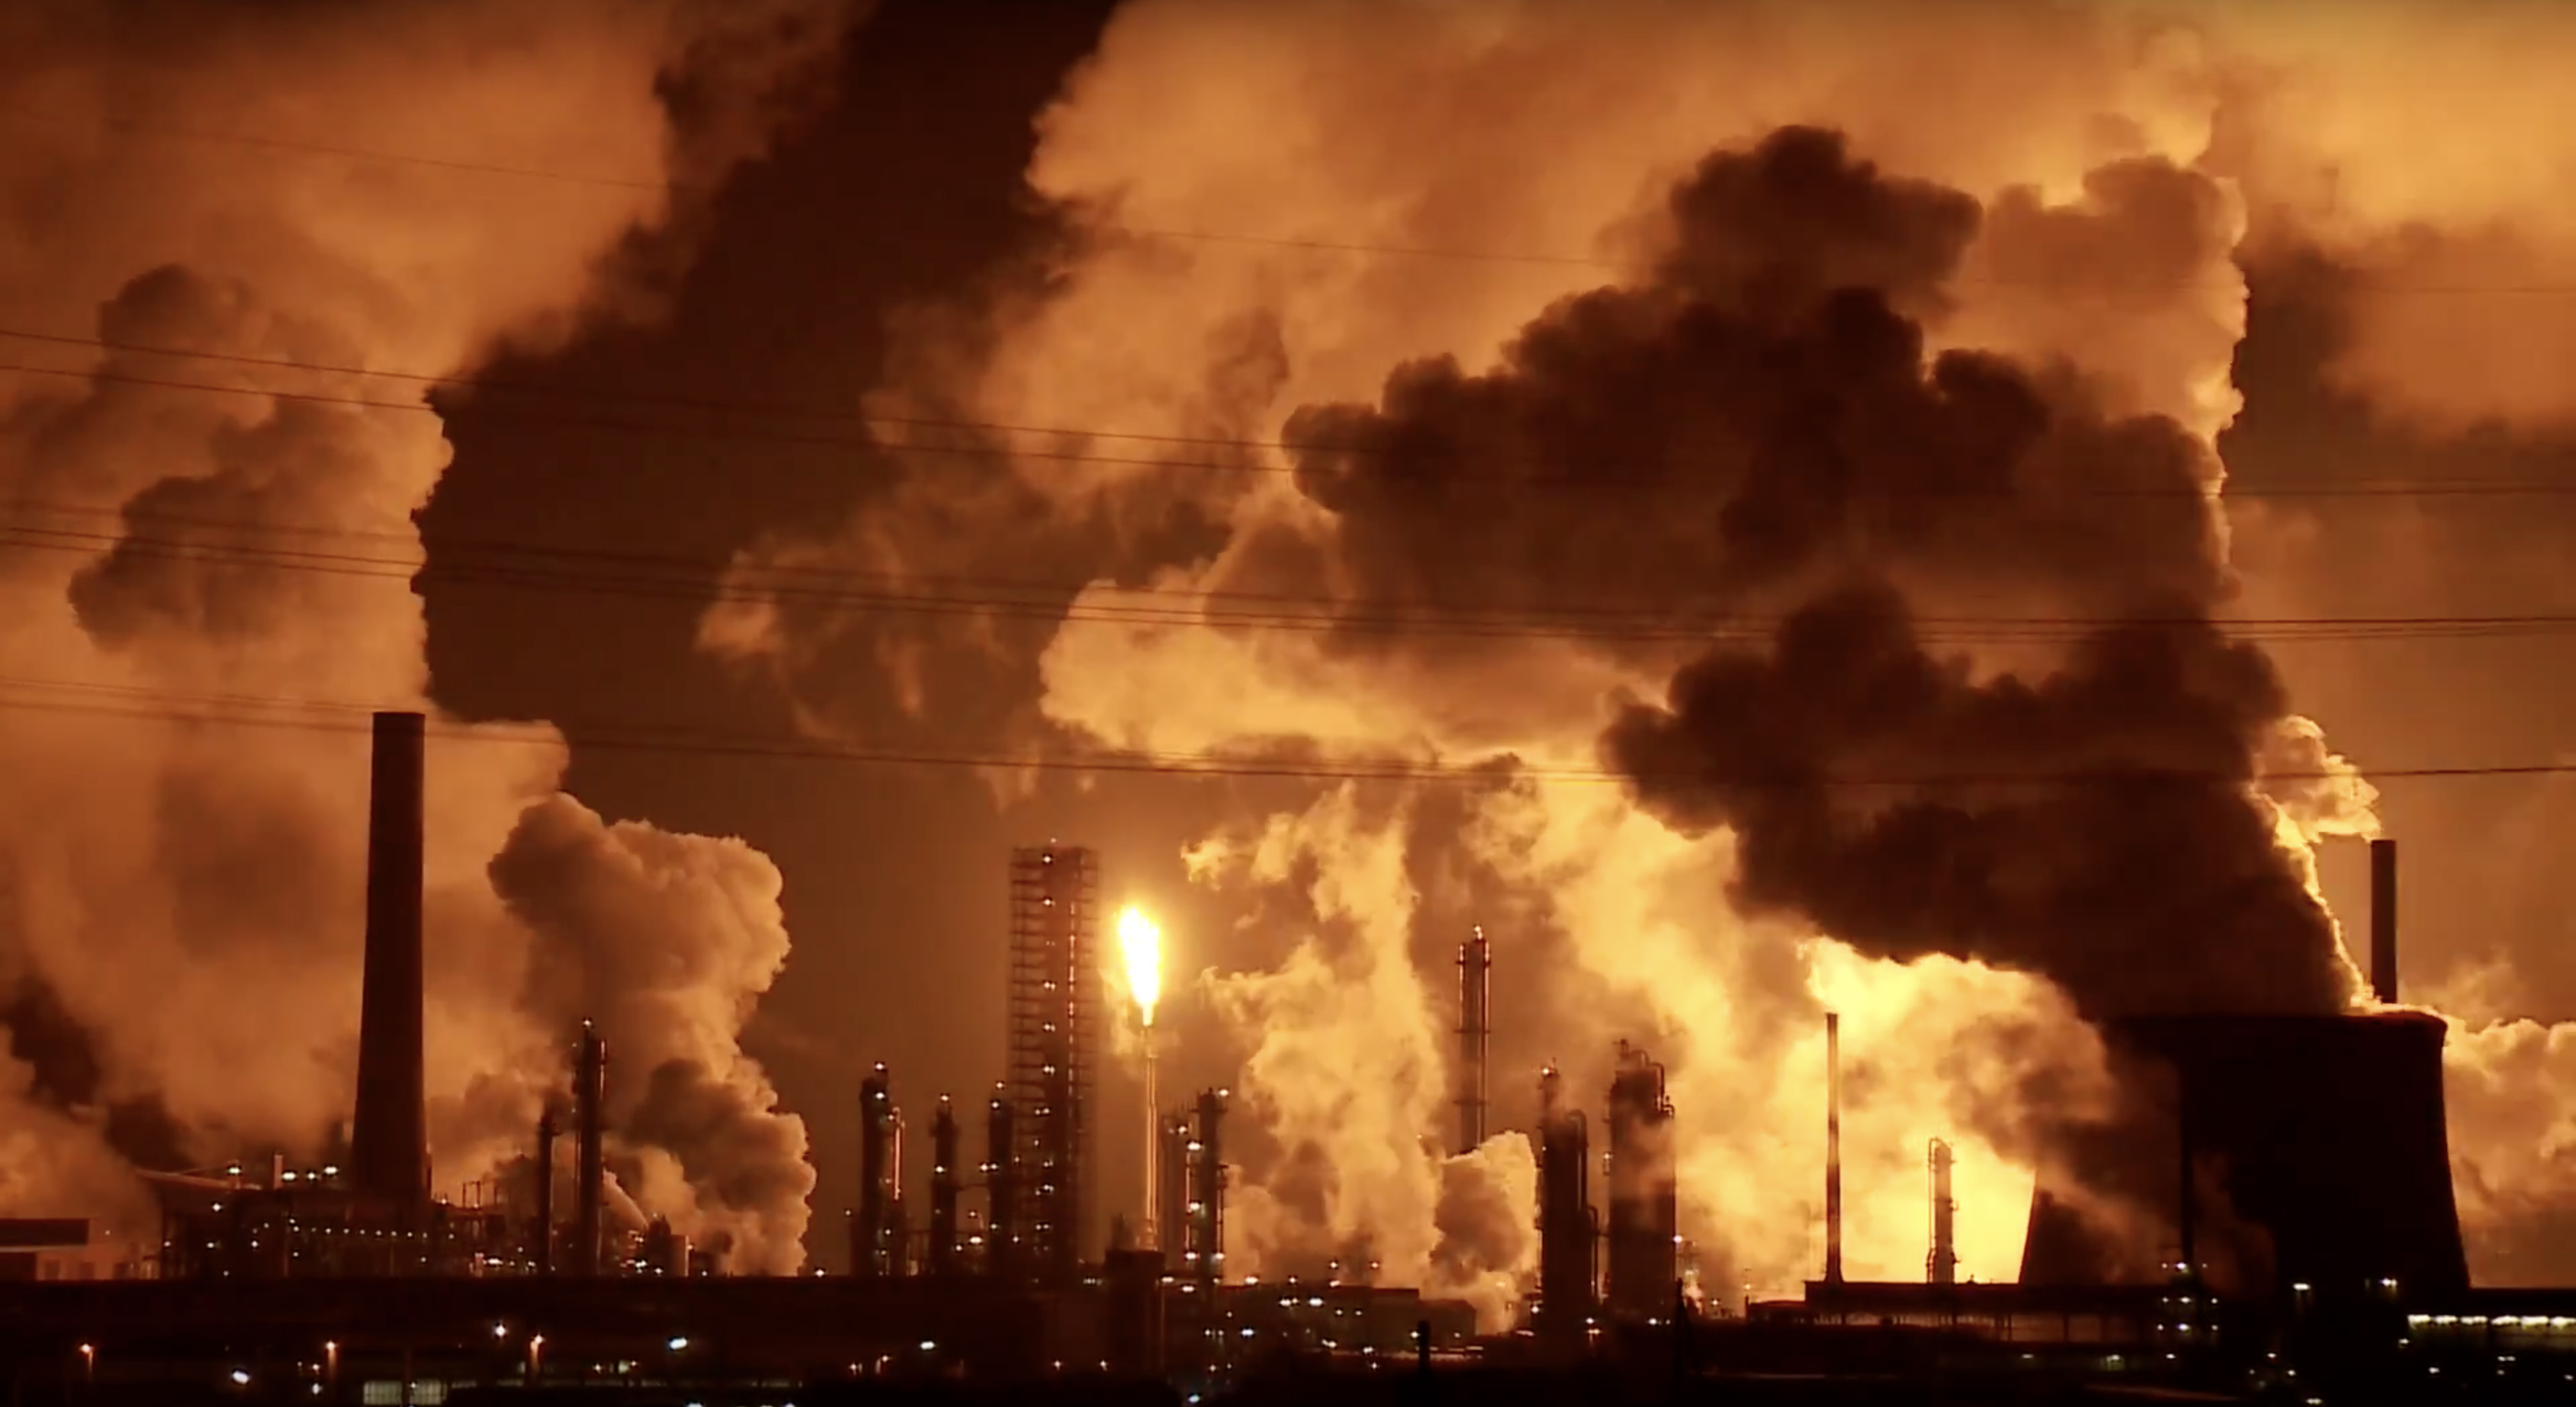 This is a picture of an oil refinery at night.